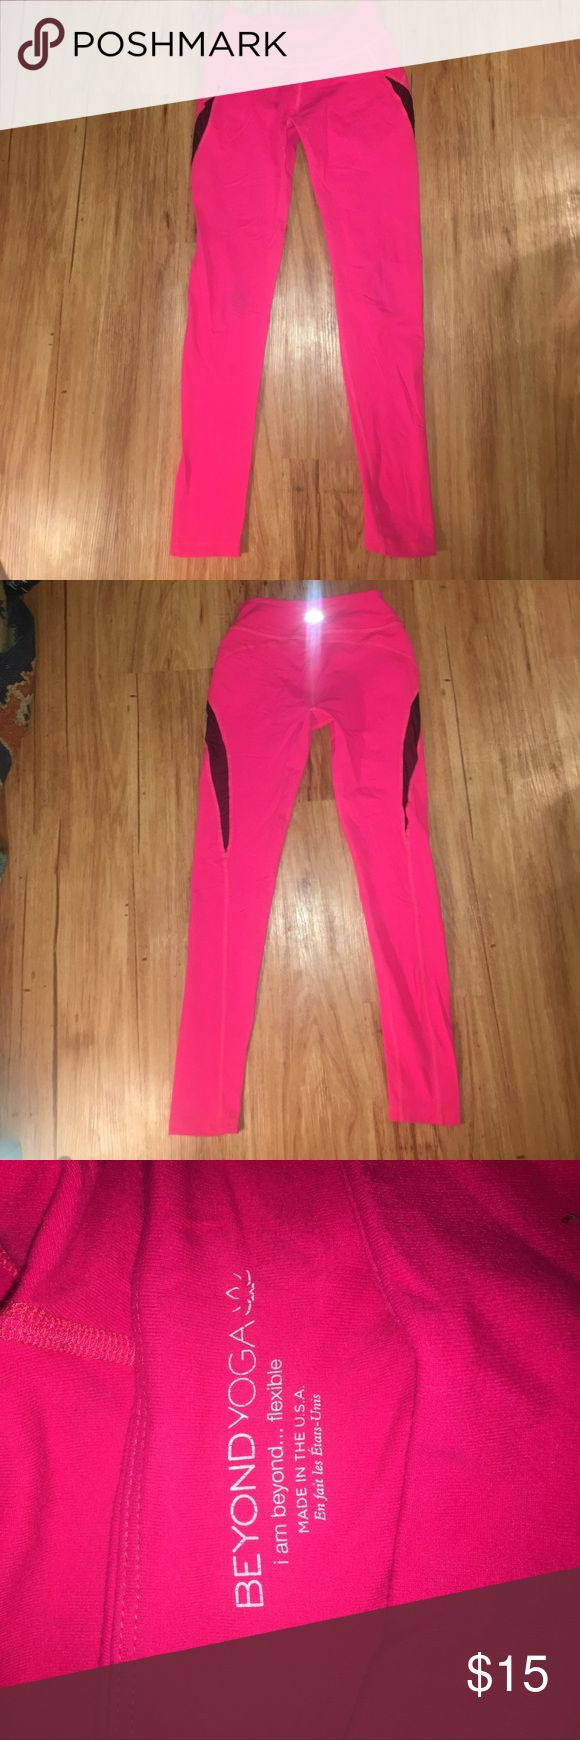 Beyond Yoga pink yoga pants Beyond yoga hot pink yoga pants with black mesh up thigh Beyond Yoga Pants Leggings